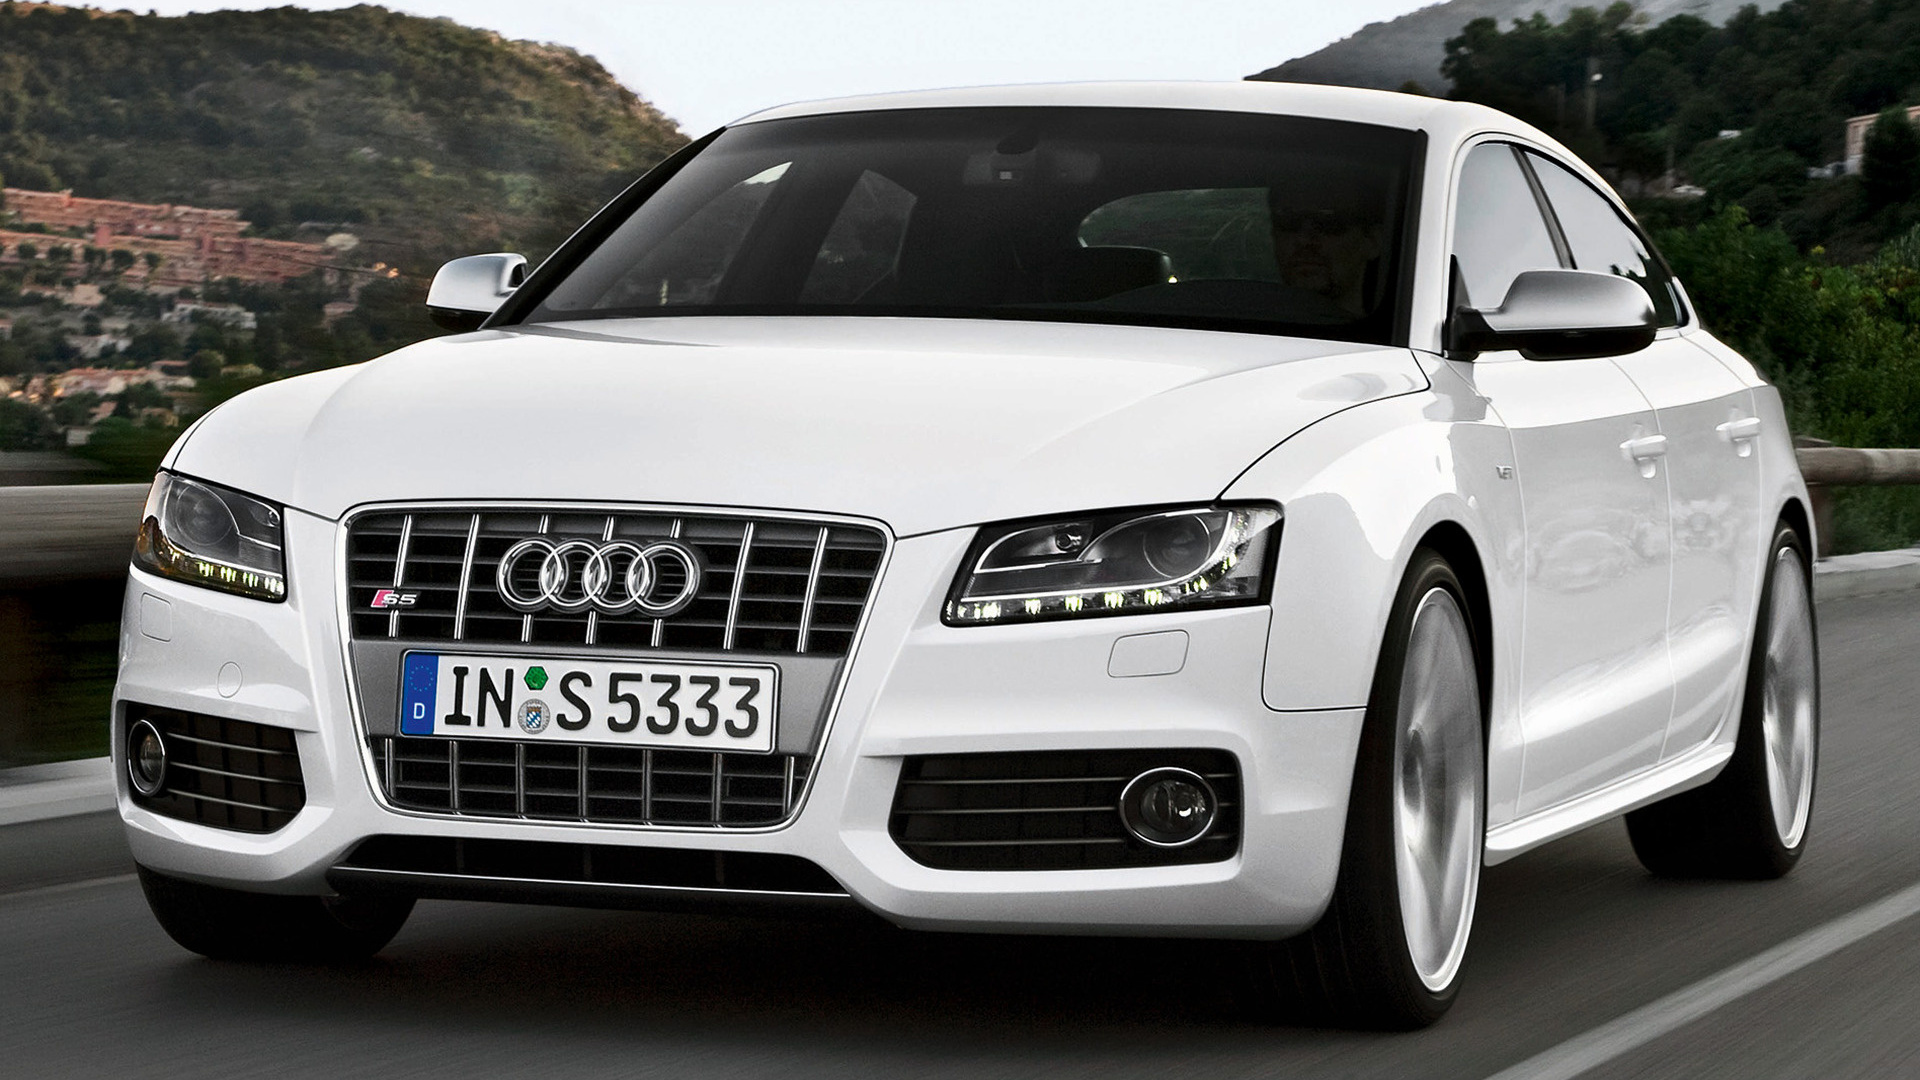 2009 Audi S5 Sportback - Wallpapers and HD Images | Car Pixel